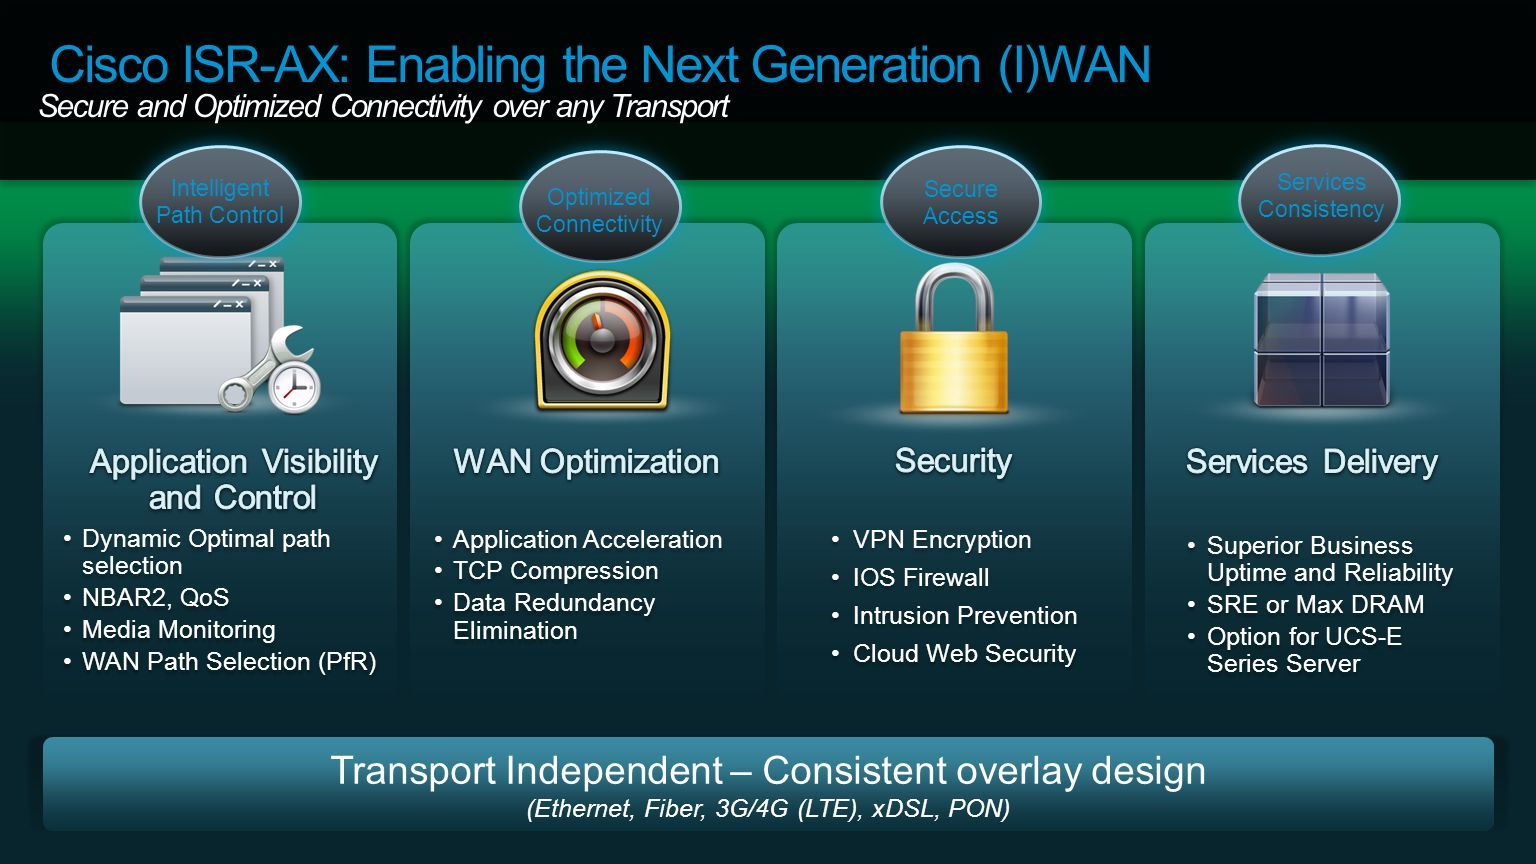 Cisco ISR-AX: Enabling the Next Generation (I)WAN Secure and Optimized Connectivity over any Transport